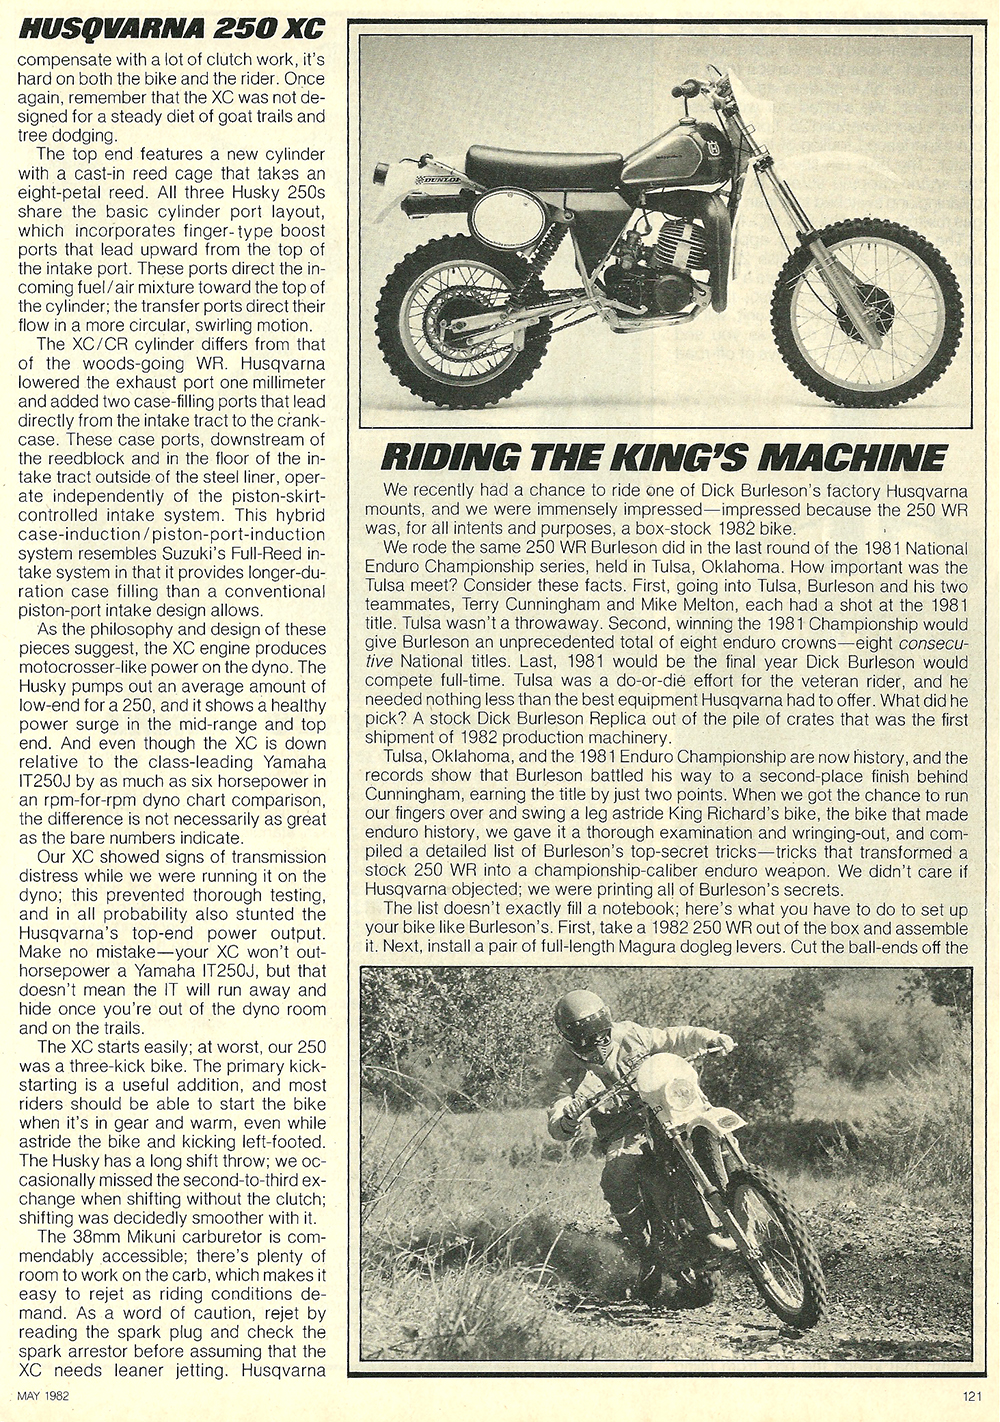 1982 Husqvarna 250 XC road test 5.jpg